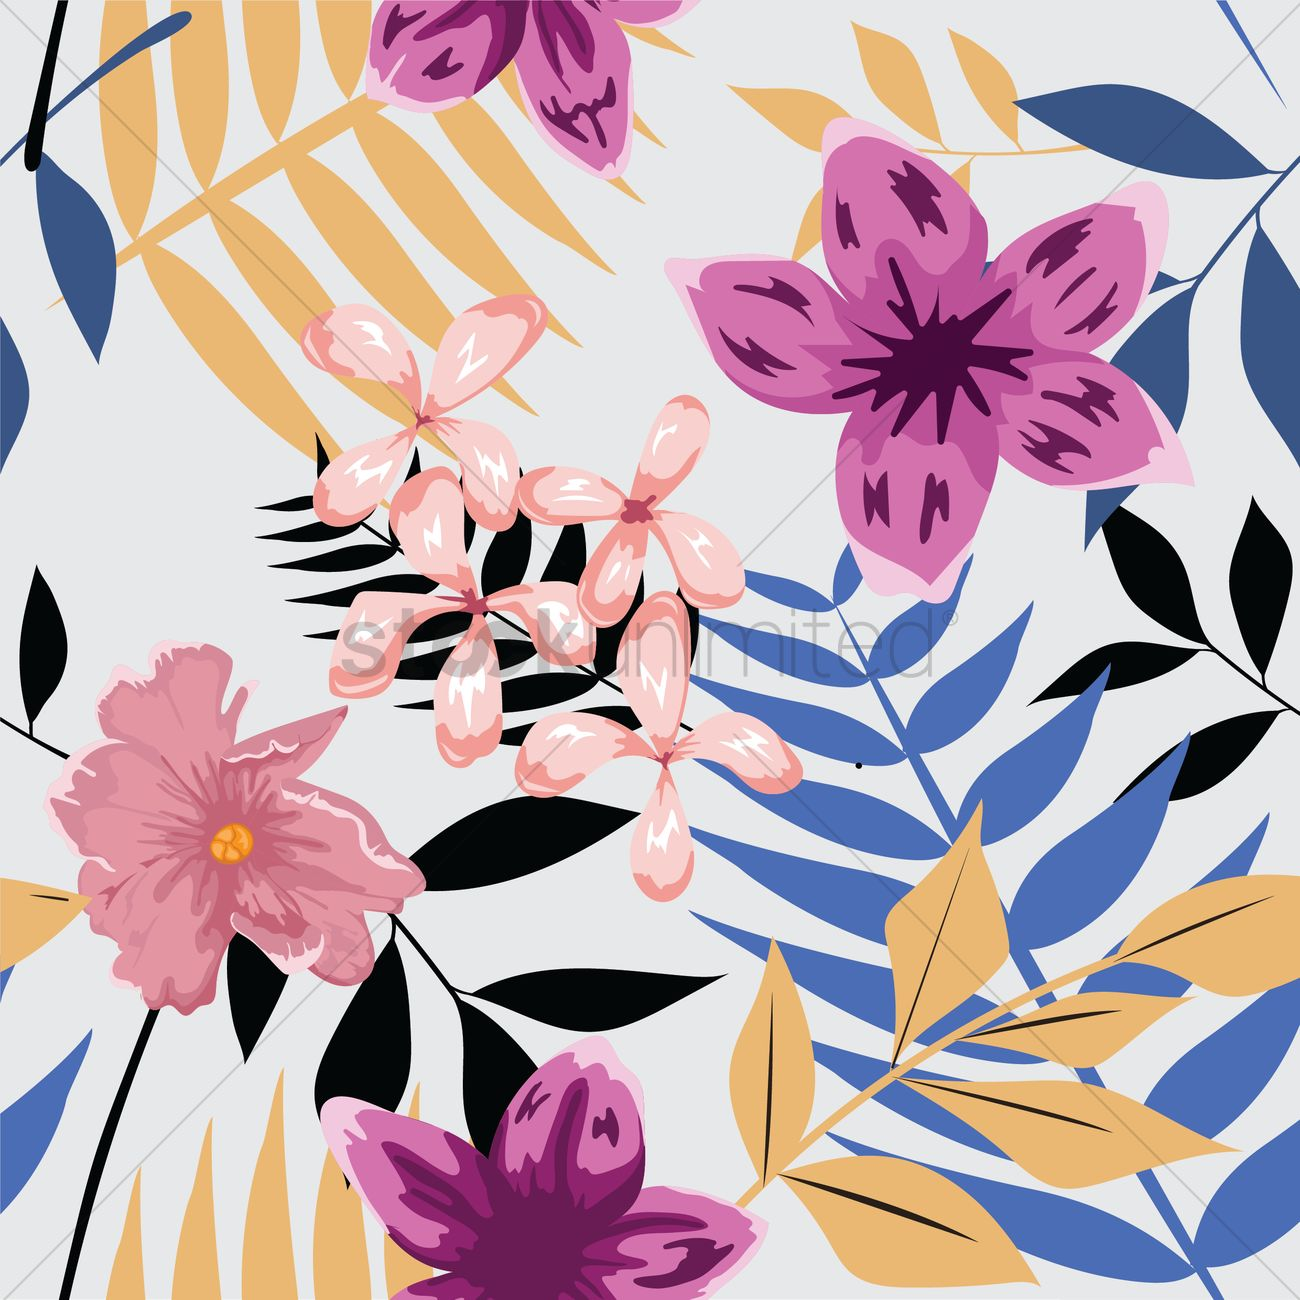 Floral Wallpaper Vector Image 1694347 Stockunlimited